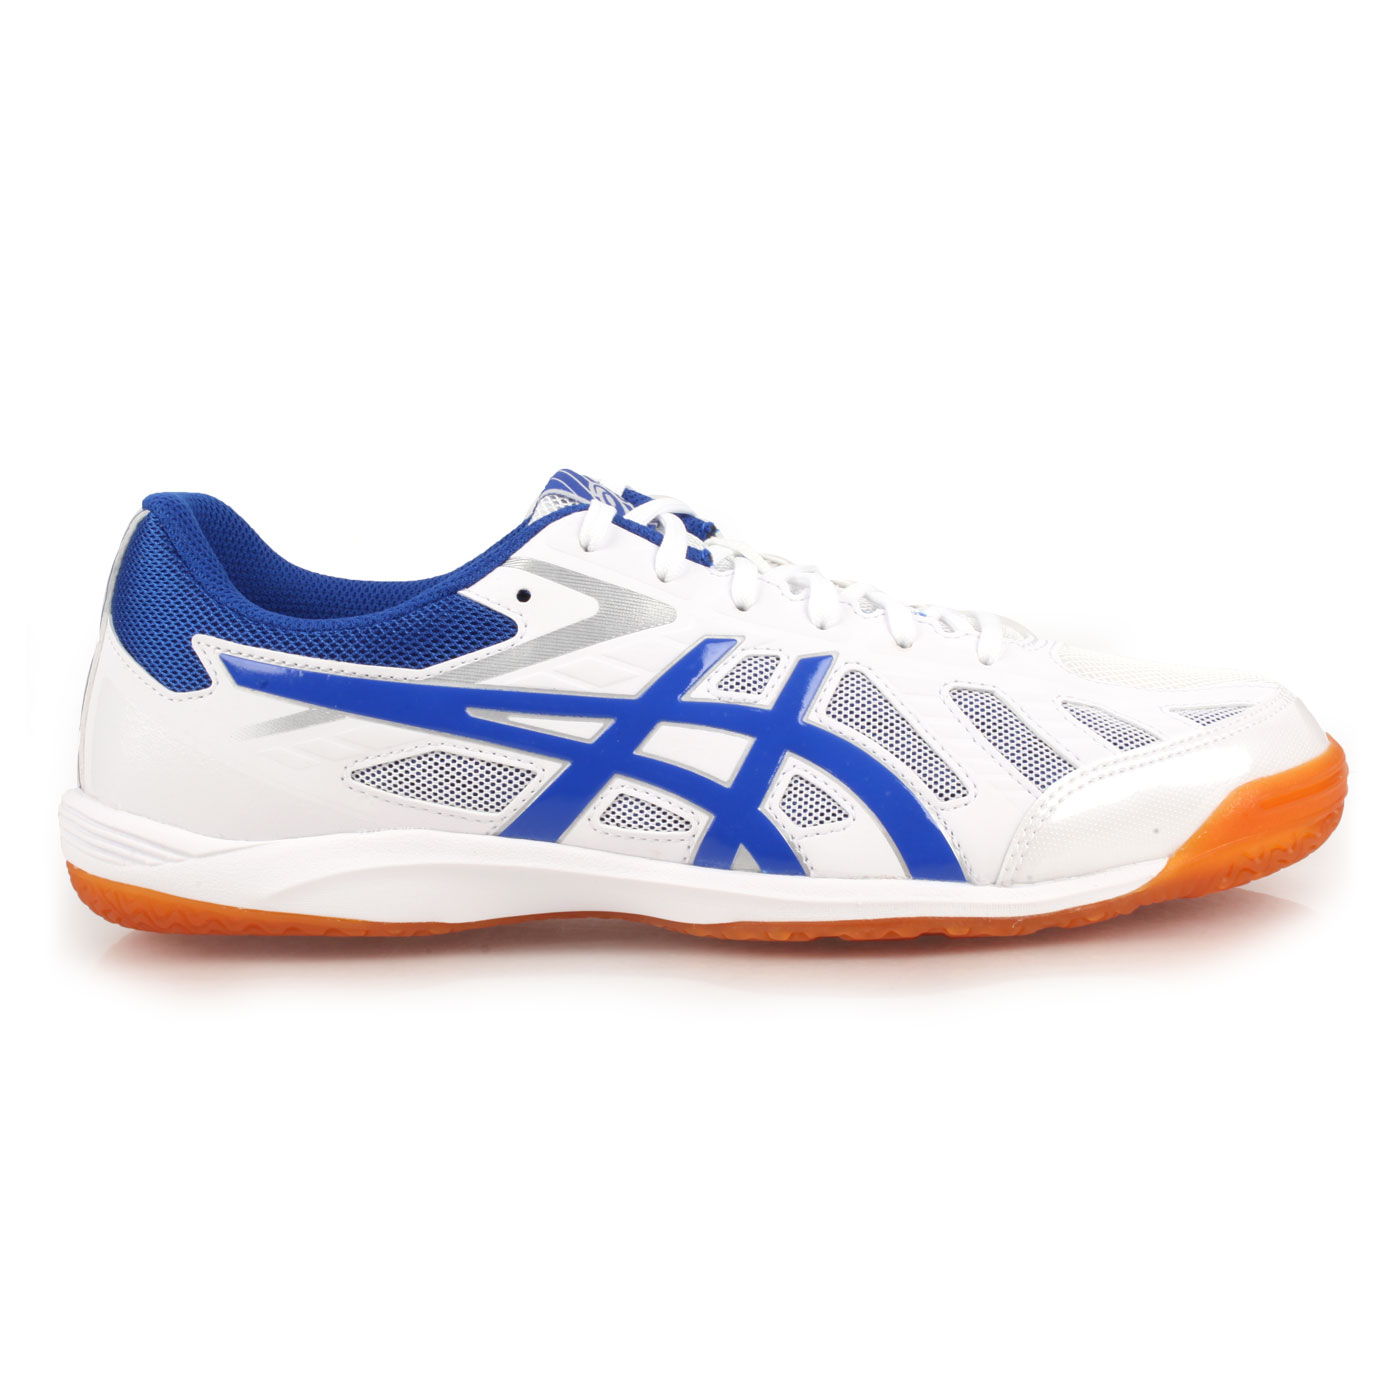 ASICS 桌球鞋  @ATTACK HYPERBEAT SP 3@1073A004-101 - 白藍